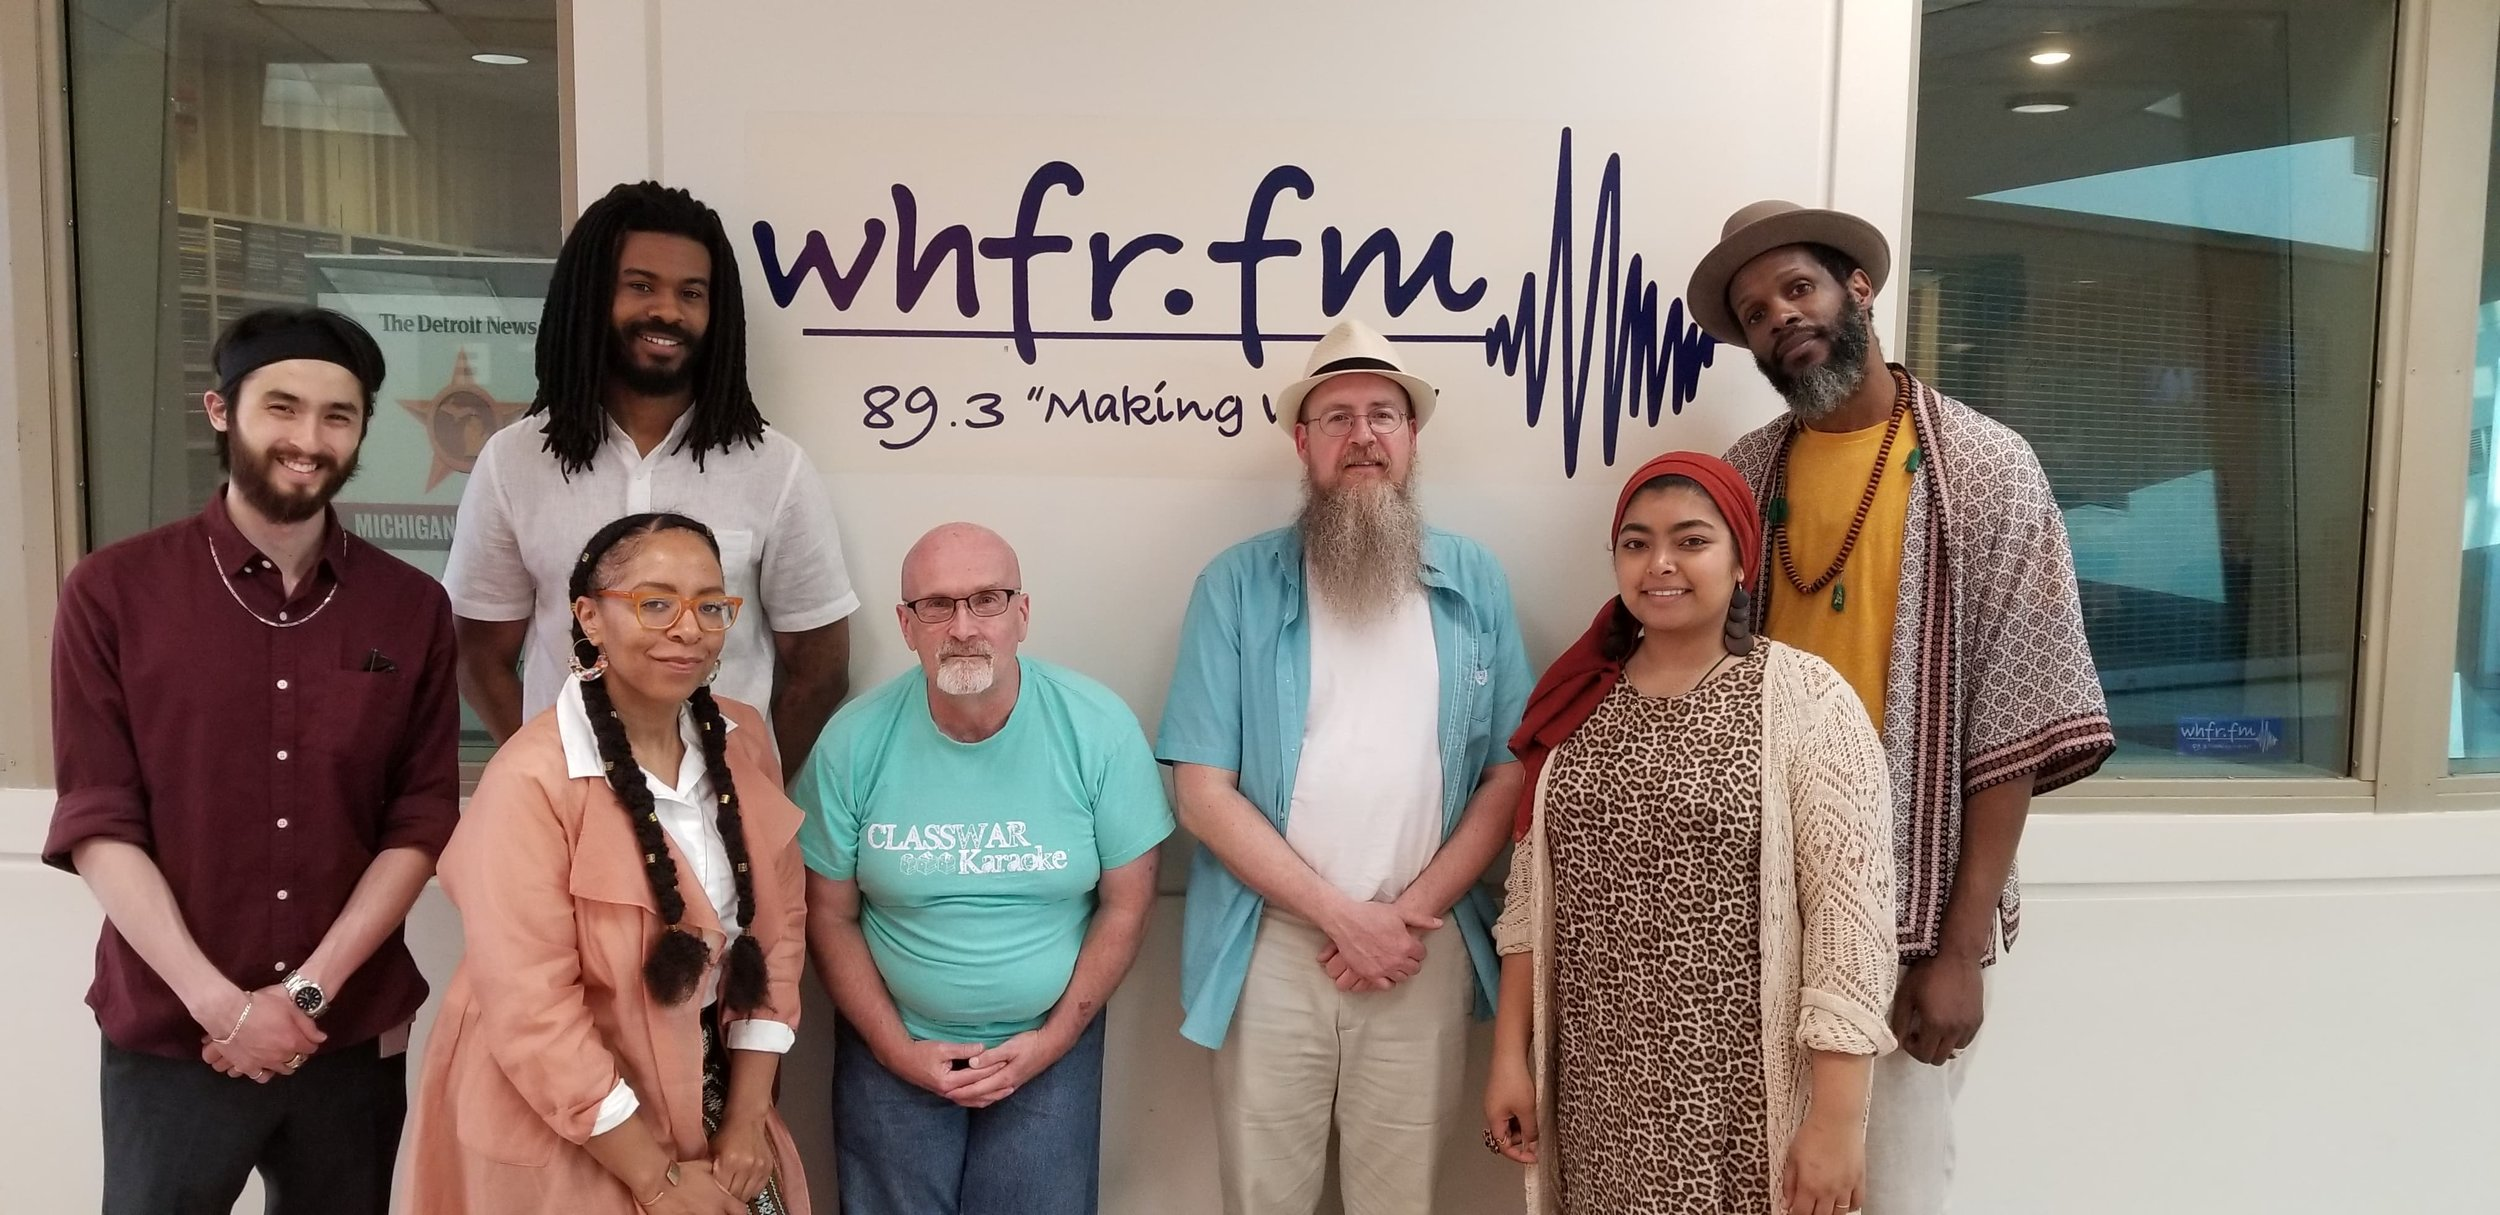 WHFR 89.3 - Lu and Divine Providence was invited to WHFR to perform their and discuss their album debut Inner Horizons. Click here to HERE the entire segment.